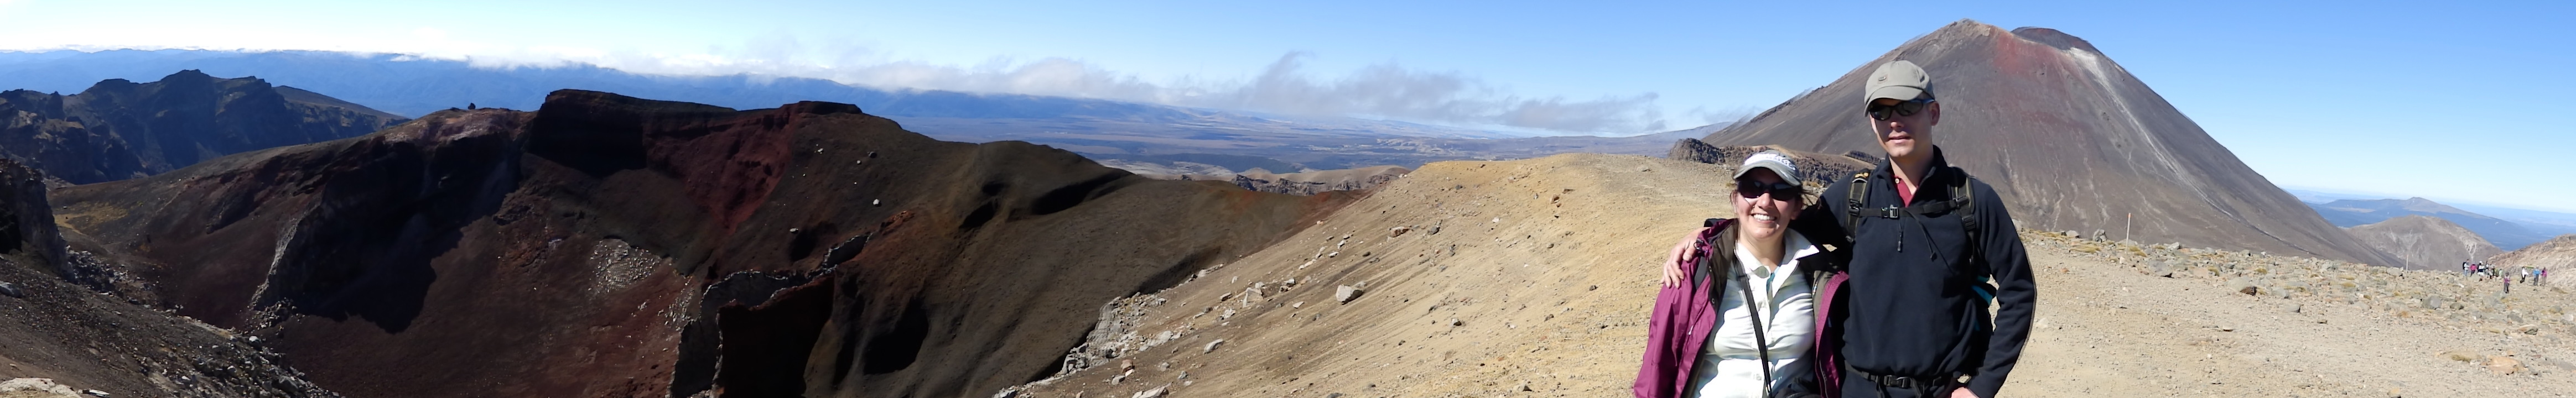 Tongariro crossing - red crater